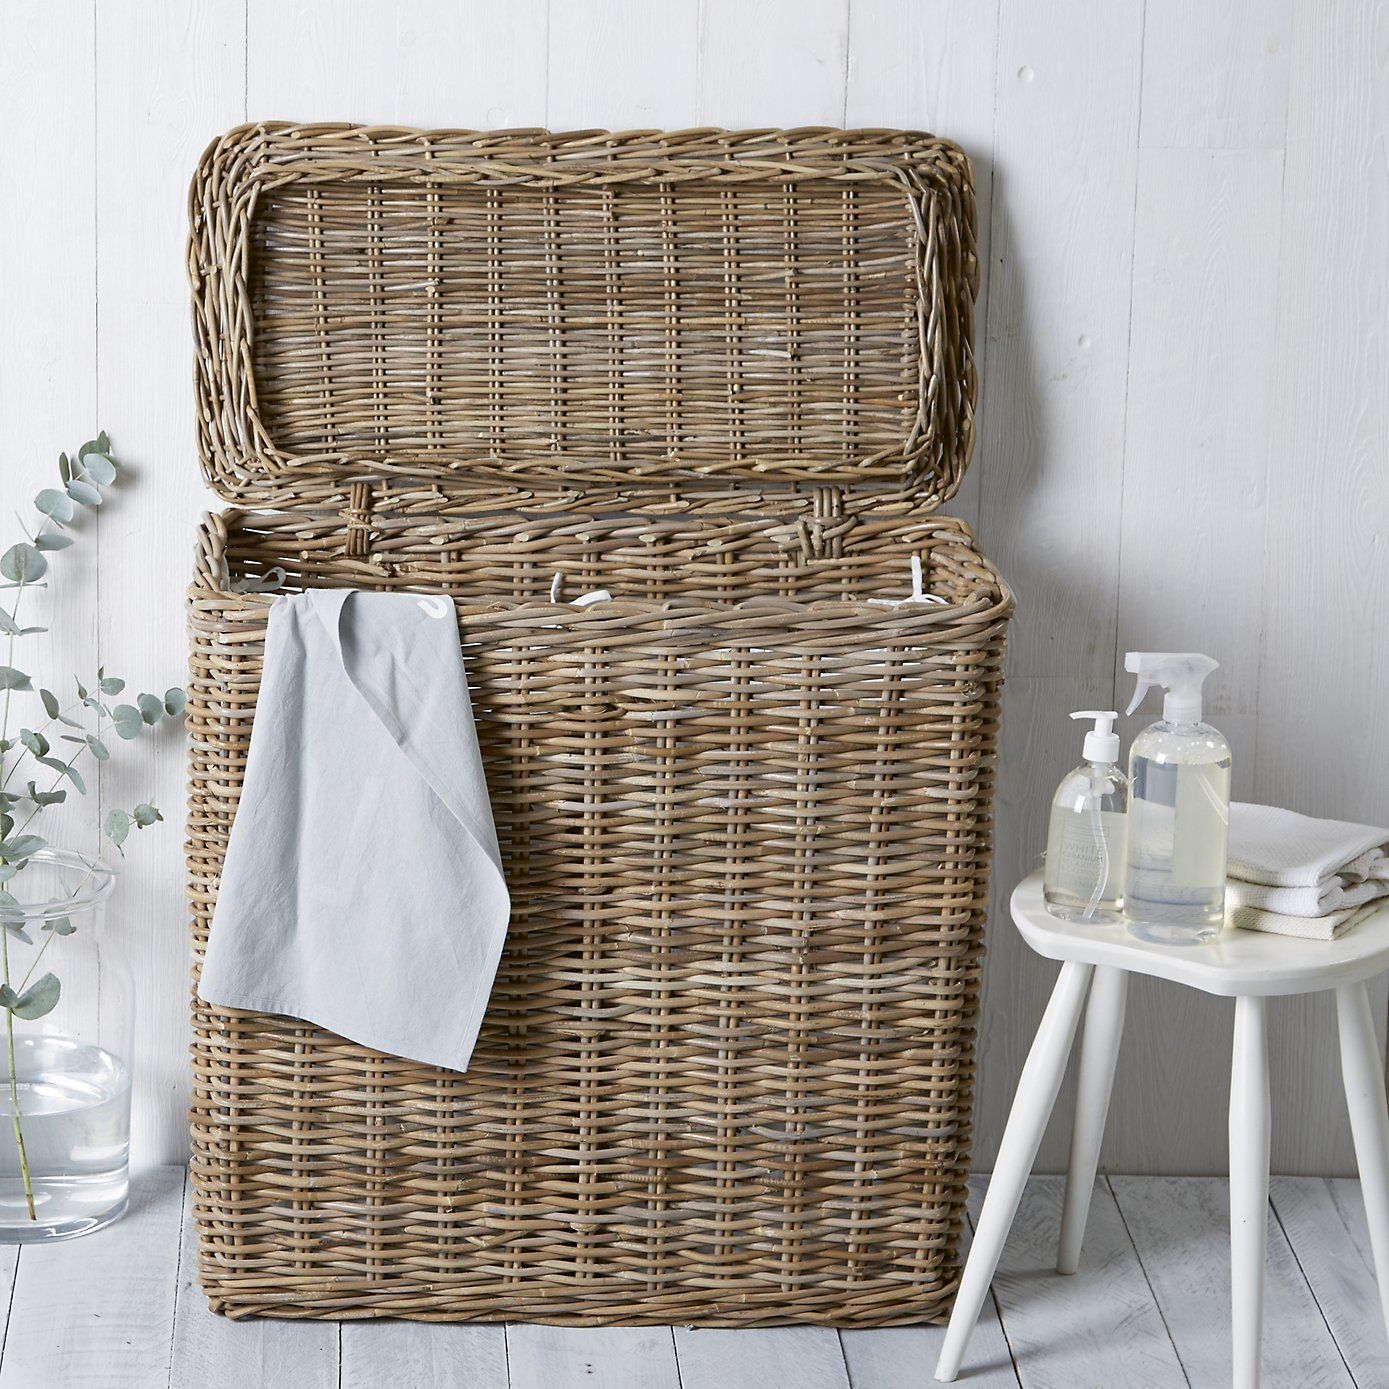 Double Laundry Basket  from The White Company